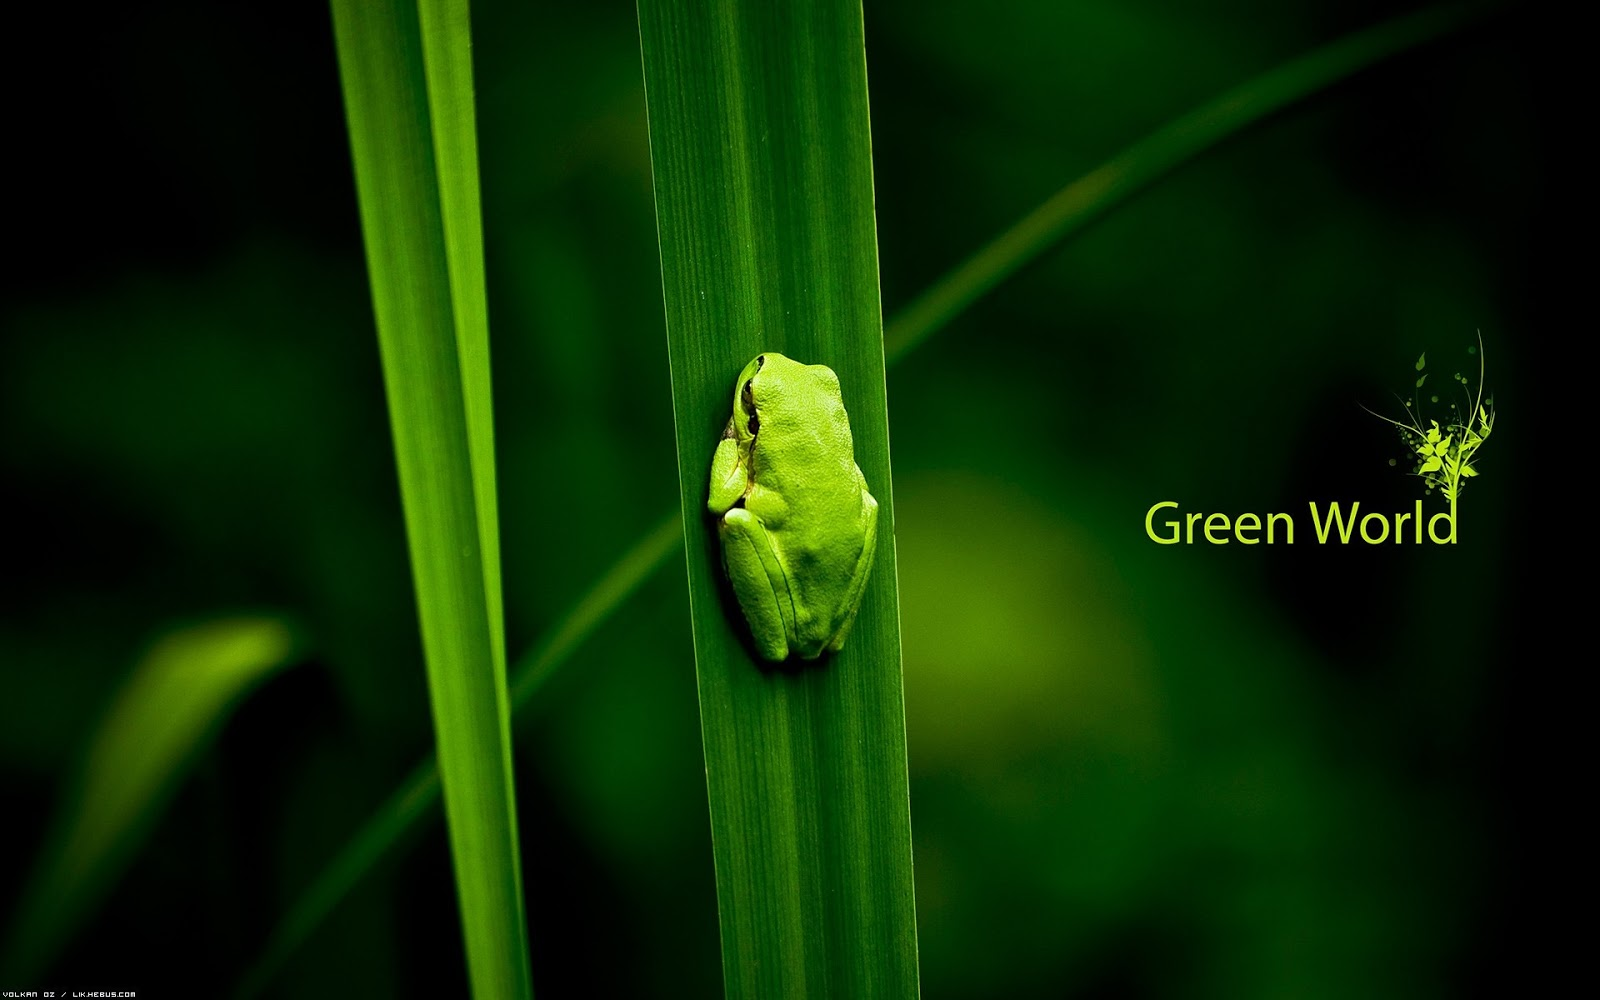 http://3.bp.blogspot.com/-FKIrOwN-KaU/Tlme1Xk5H2I/AAAAAAAAIdc/Z8afxkTEjAw/s1600/green_world-1920x1200_little_frog_HD_wallpaper.jpg